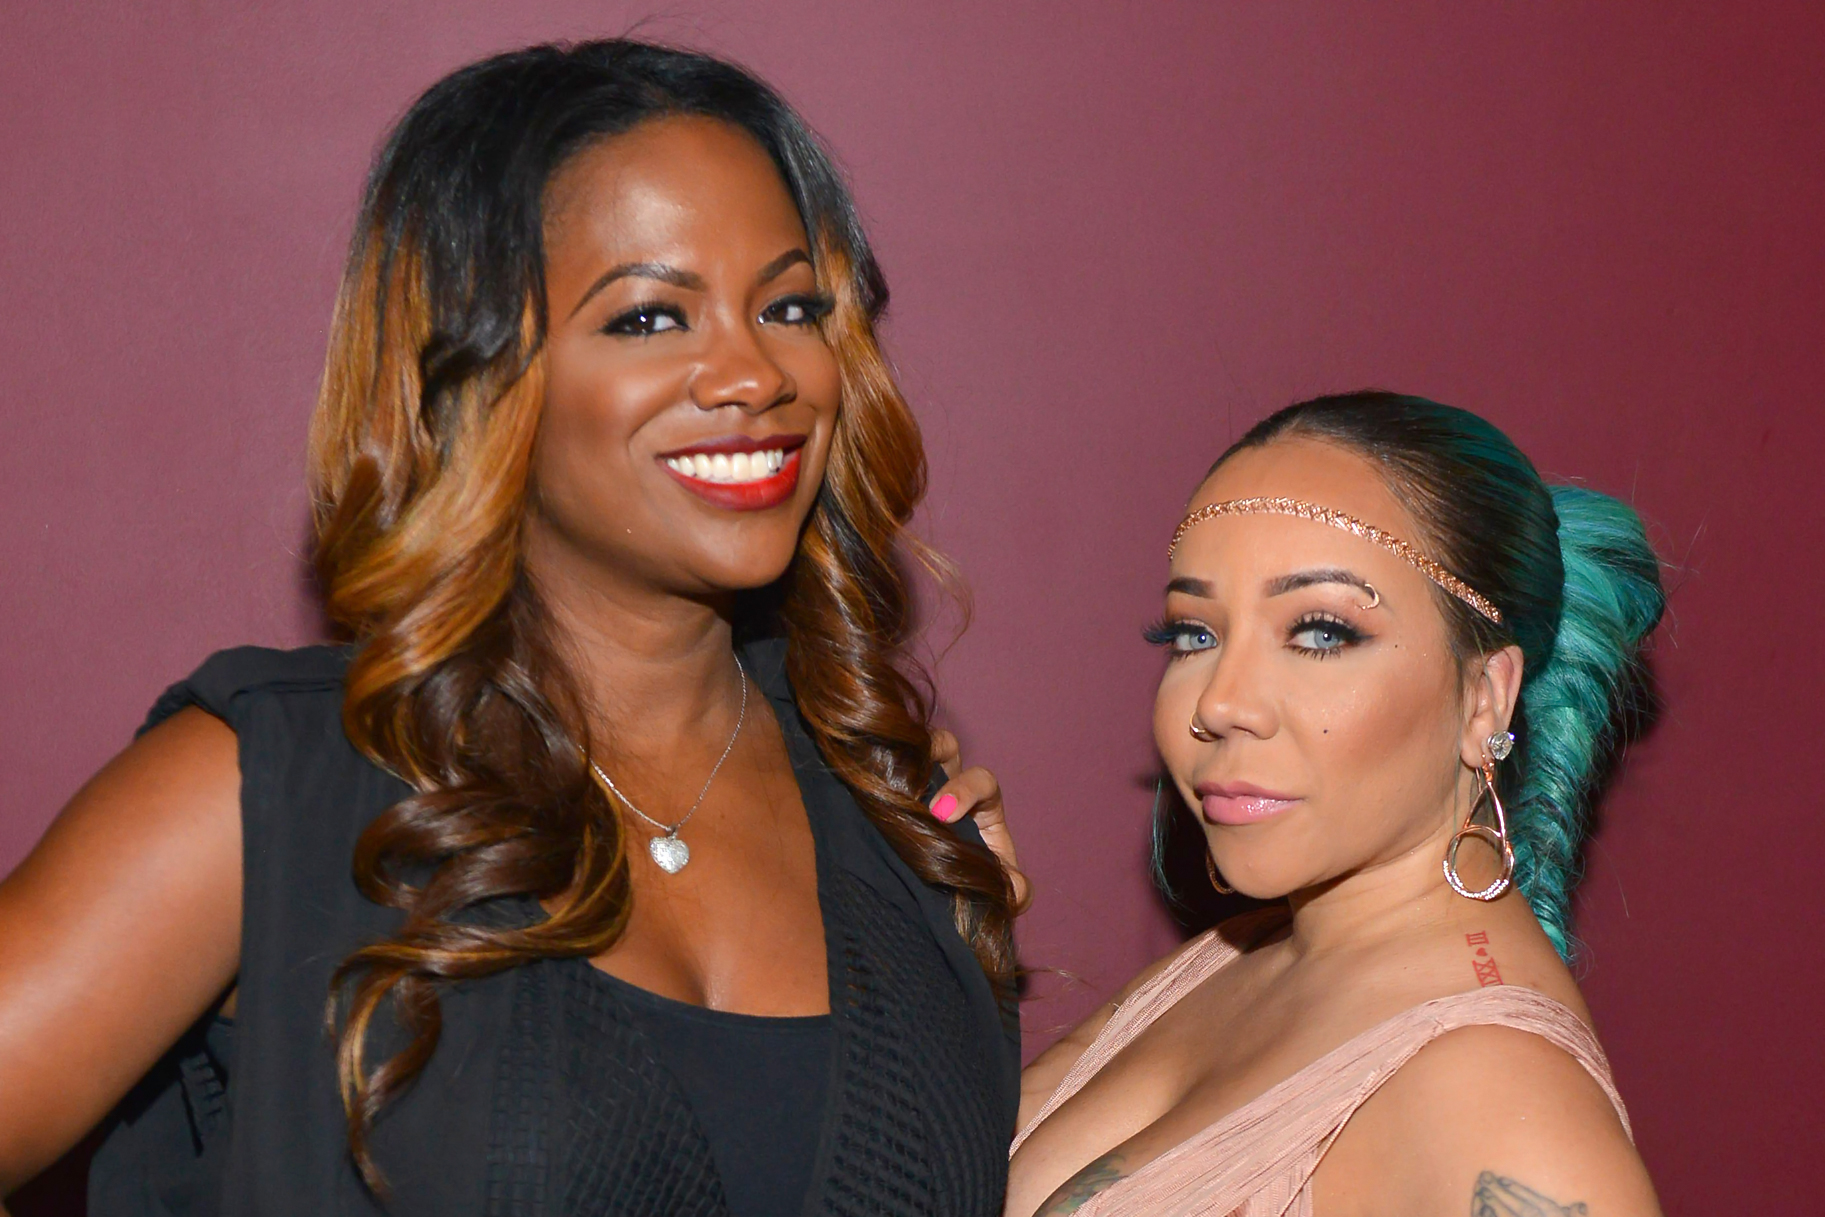 """kandi-burruss-latest-picture-with-tiny-harris-on-instagram-has-fans-saying-that-the-ladies-look-like-their-daughters-heiress-harris-and-riley-burruss"""